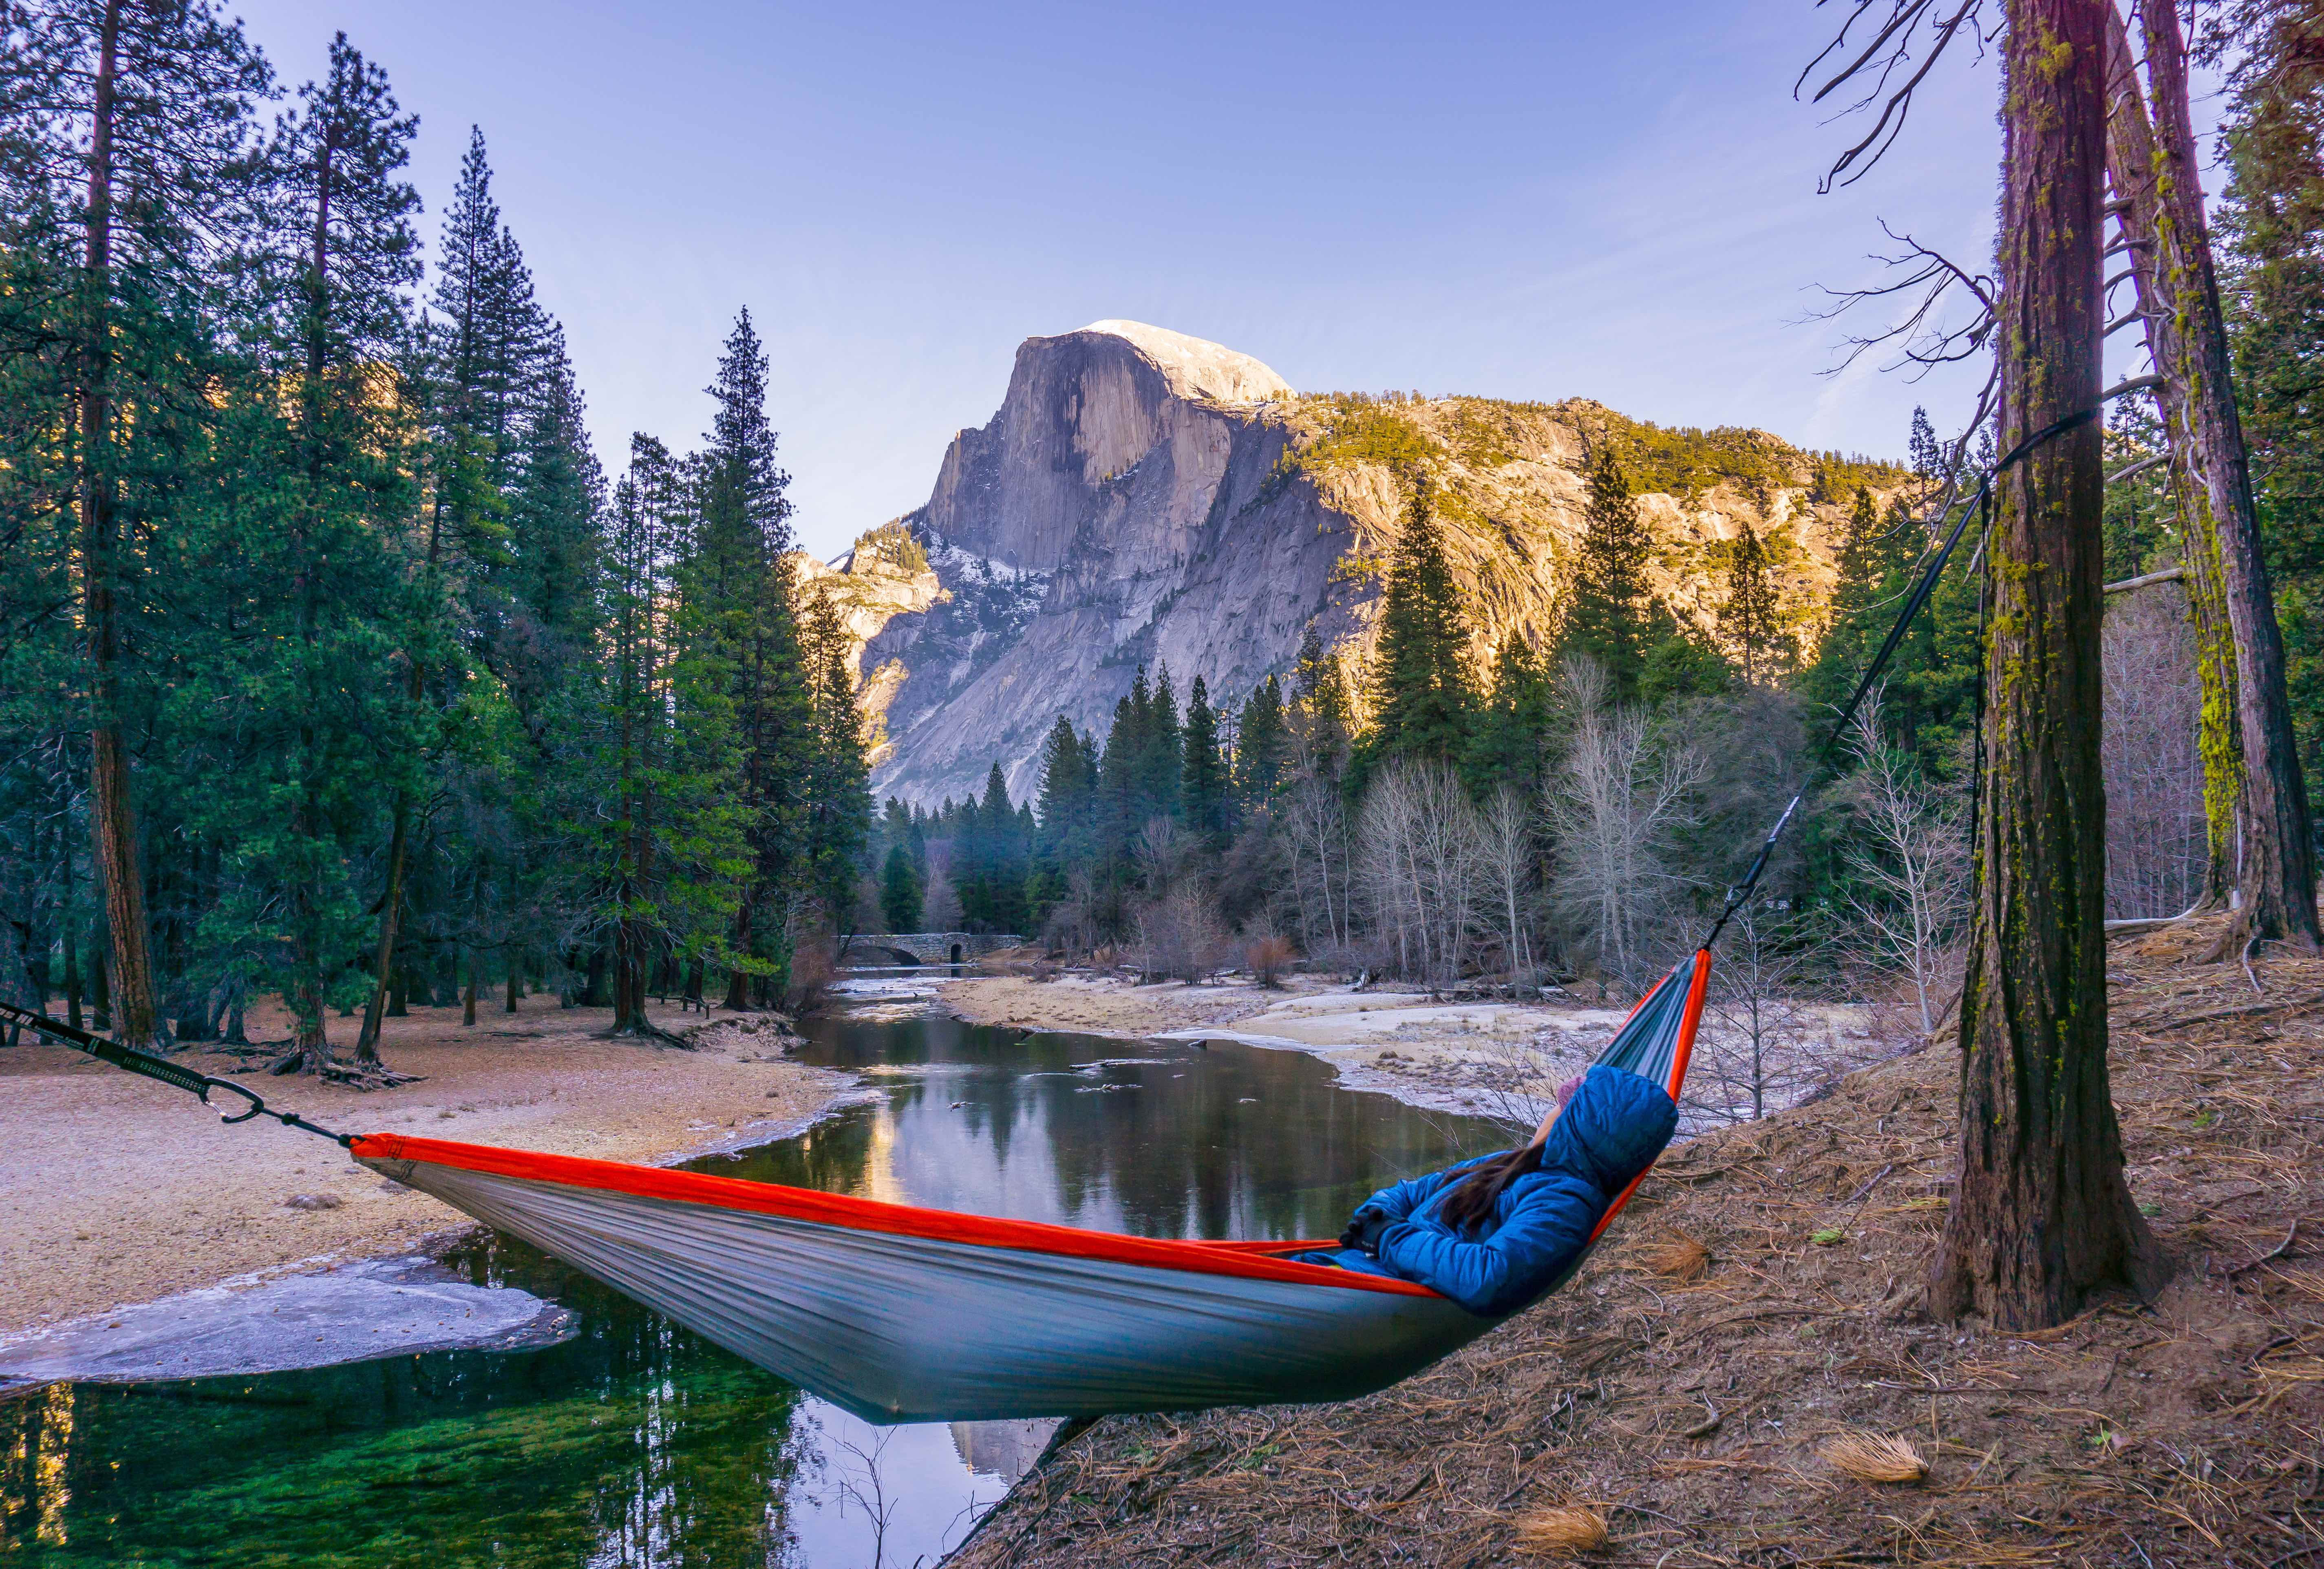 home to breakfast exploring defoore having yosemite with at photo arthur back kids by cabins guide jasmine o tent box the ultimate cabin henry bear no on